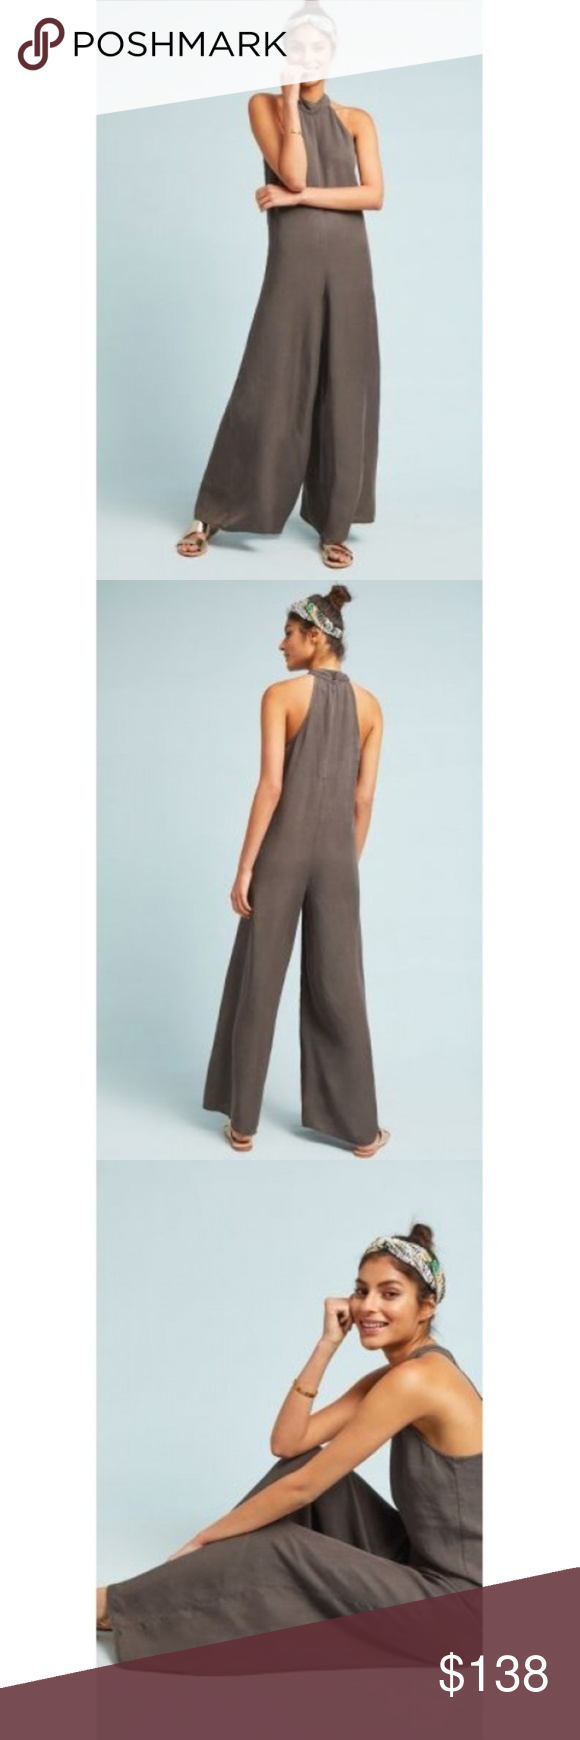 "Cloth & Stone Marfa Jumpsuit This incredibly soft jumpsuit is a light and breezy must-have for sun-soaked days and cool summer nights. Easy to wear, easy to love is the motto of the Anthropologie exclusive line Cloth & Stone. Each piece begins with an effortless silhouette, before being imbued with personal touches such as specialty washes, rich textures and seasonal hues.     Lyocell     Halter-style neck     Wide-leg silhouette     Button back     Machine wash     USA      Regular: 54.25""L     29.25"" inseam new with tag cloth & stone Pants Jumpsuits & Rompers"